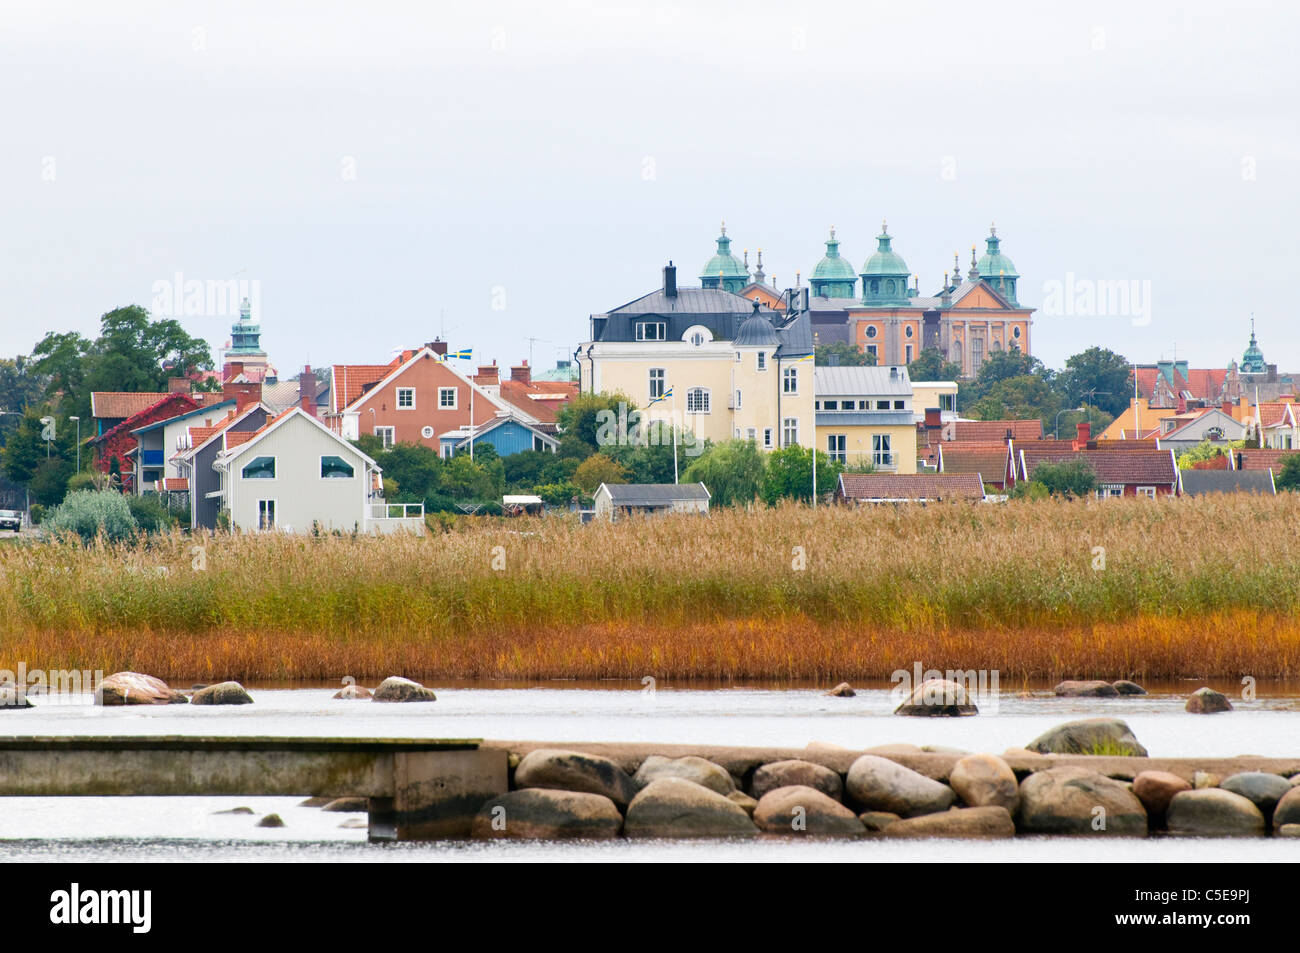 Houses at Kalmar against clear sky with Svinö bridge and fields in the foreground - Stock Image